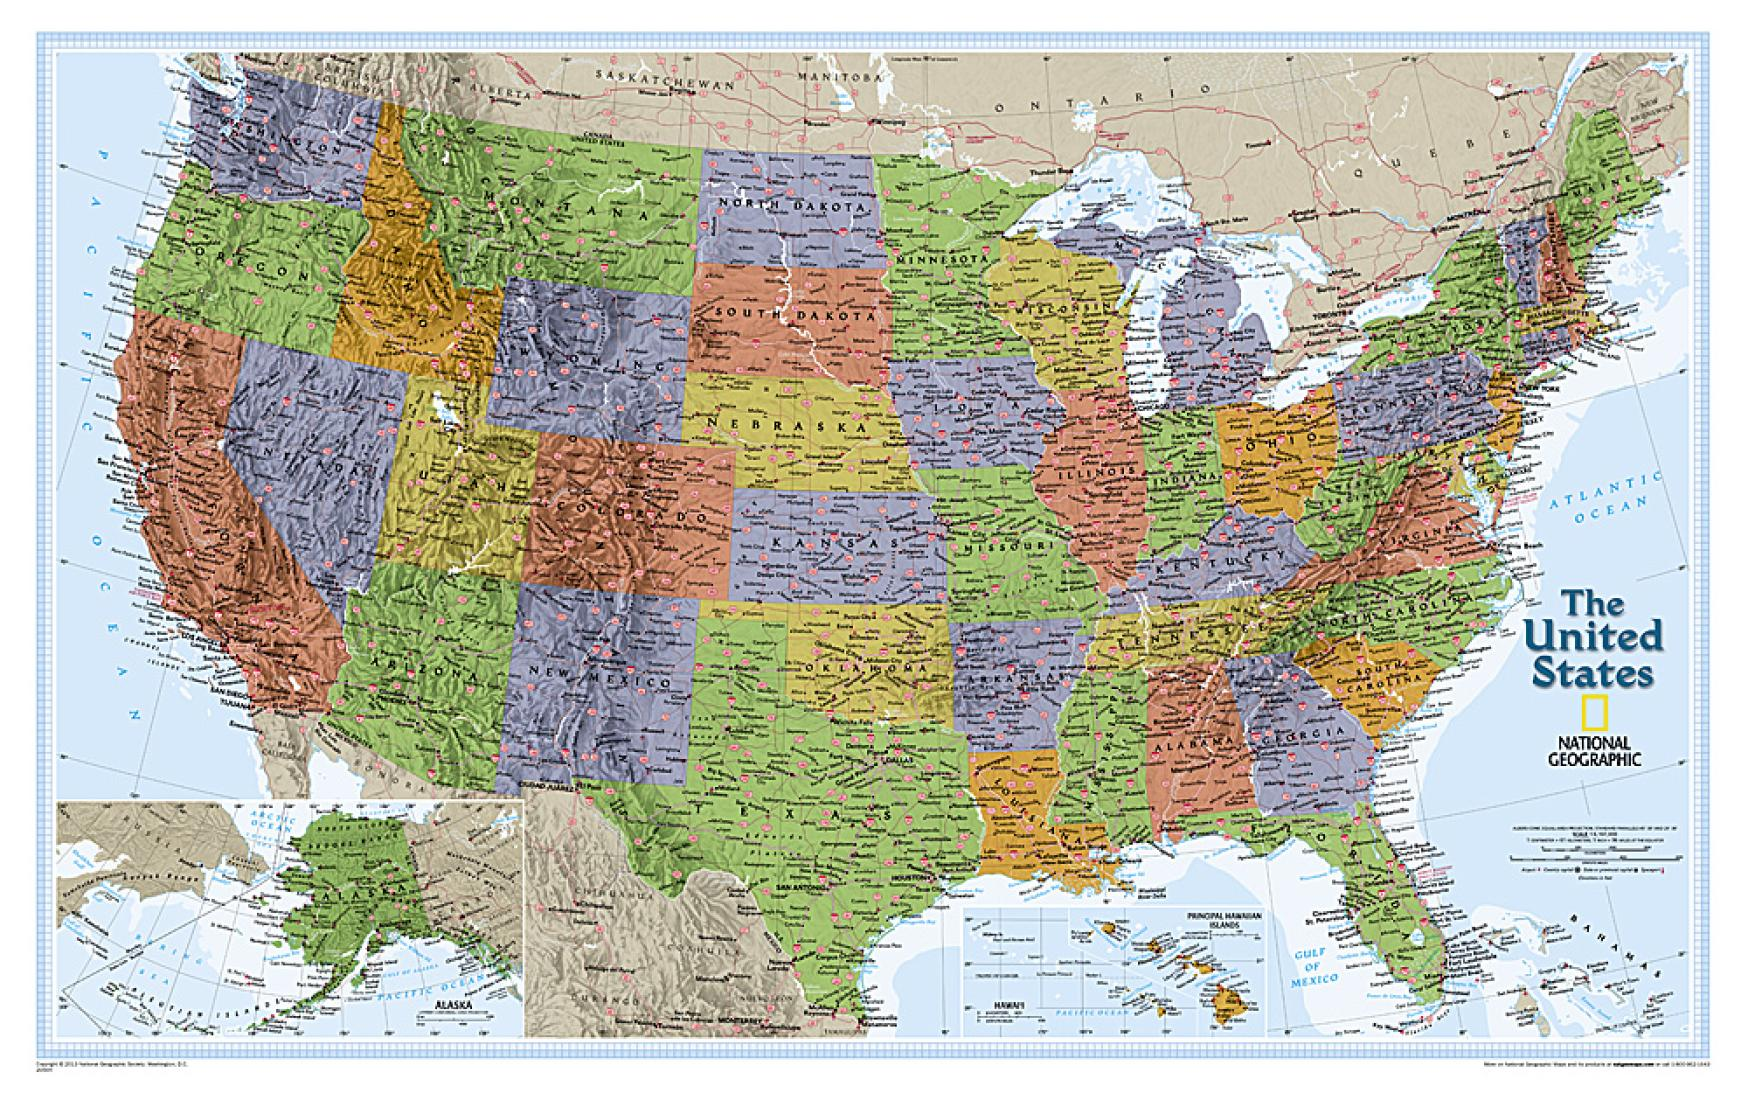 United States, Explorer, Sleeved by National Geographic Maps